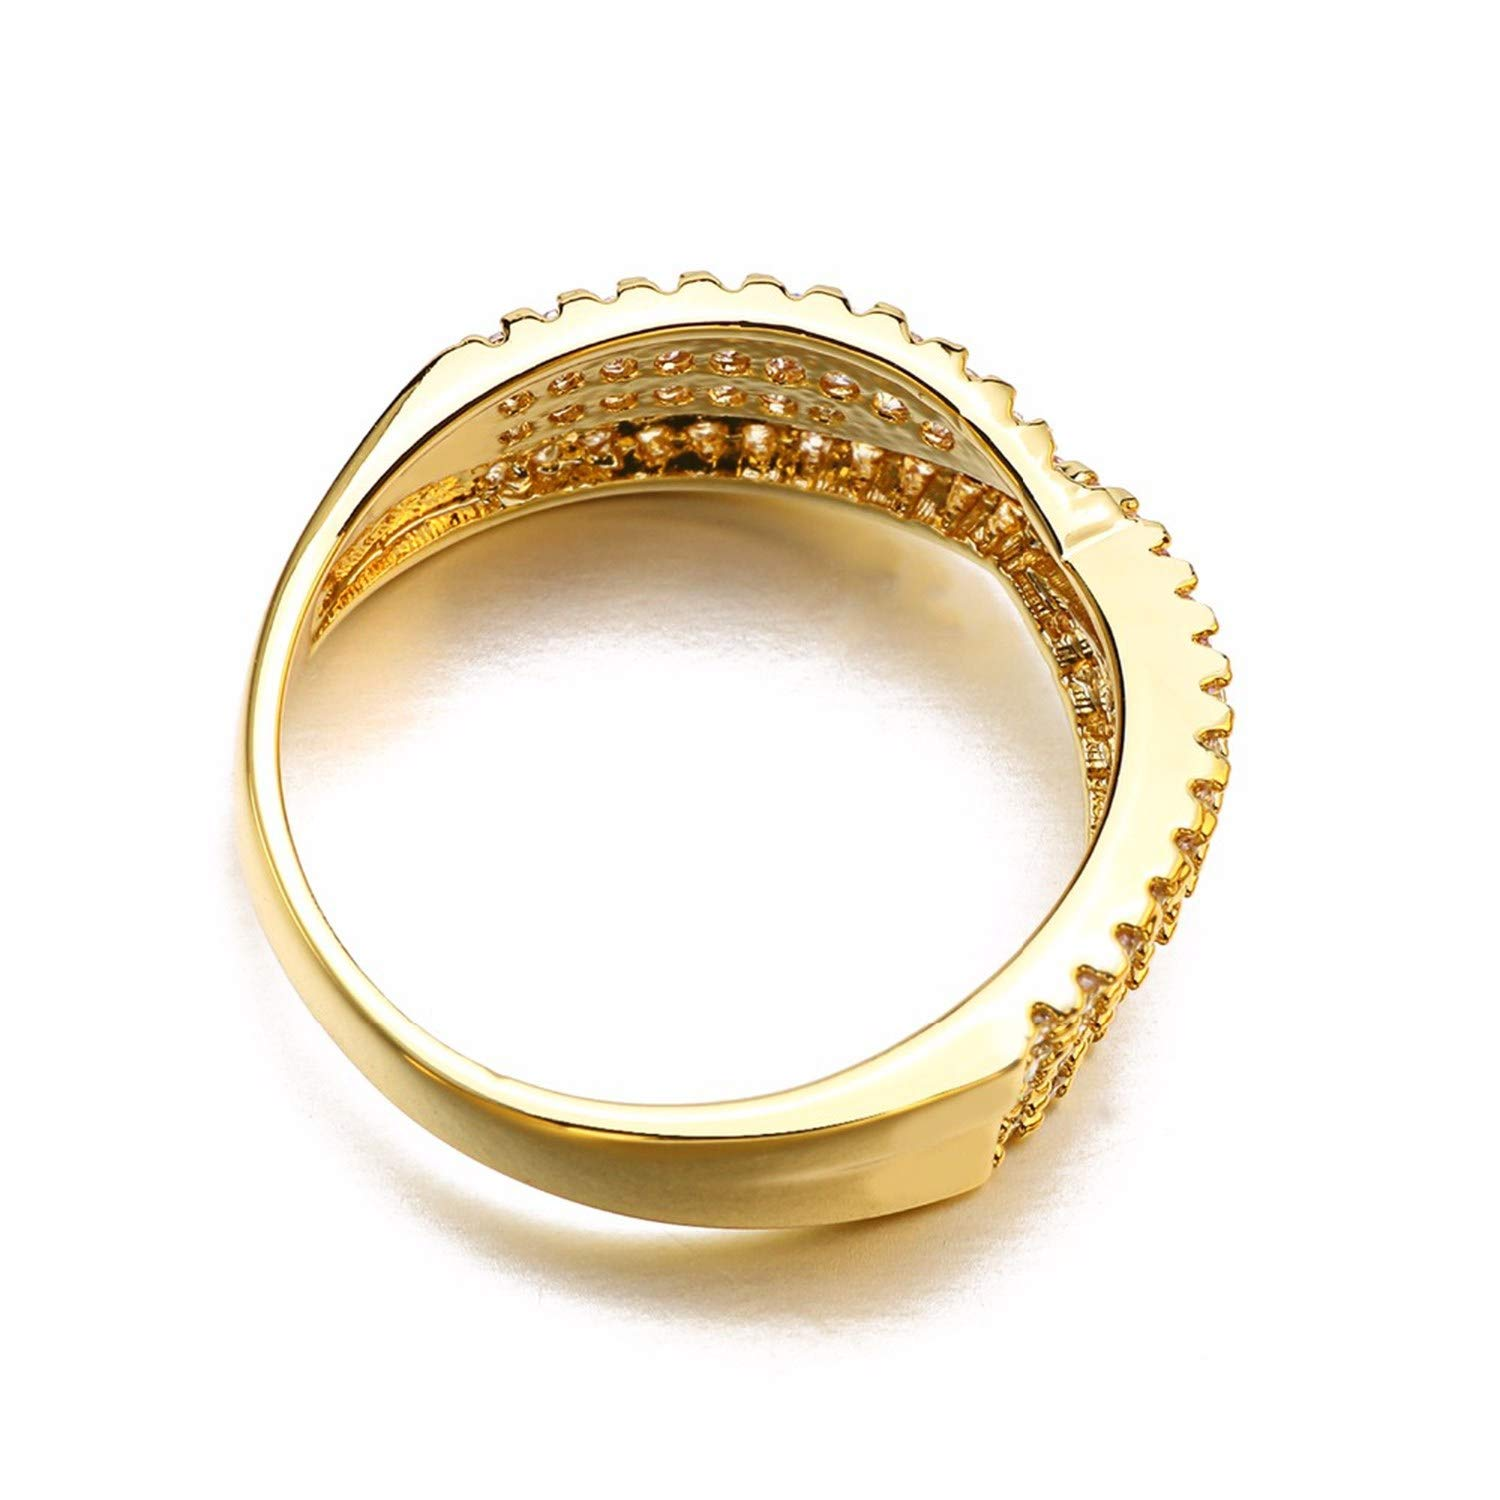 salmoph cadia Jewelry Romantic Rings Women Rose Gold//Gold//Silver Brass Finger Ring,7,White Yellow,Izable